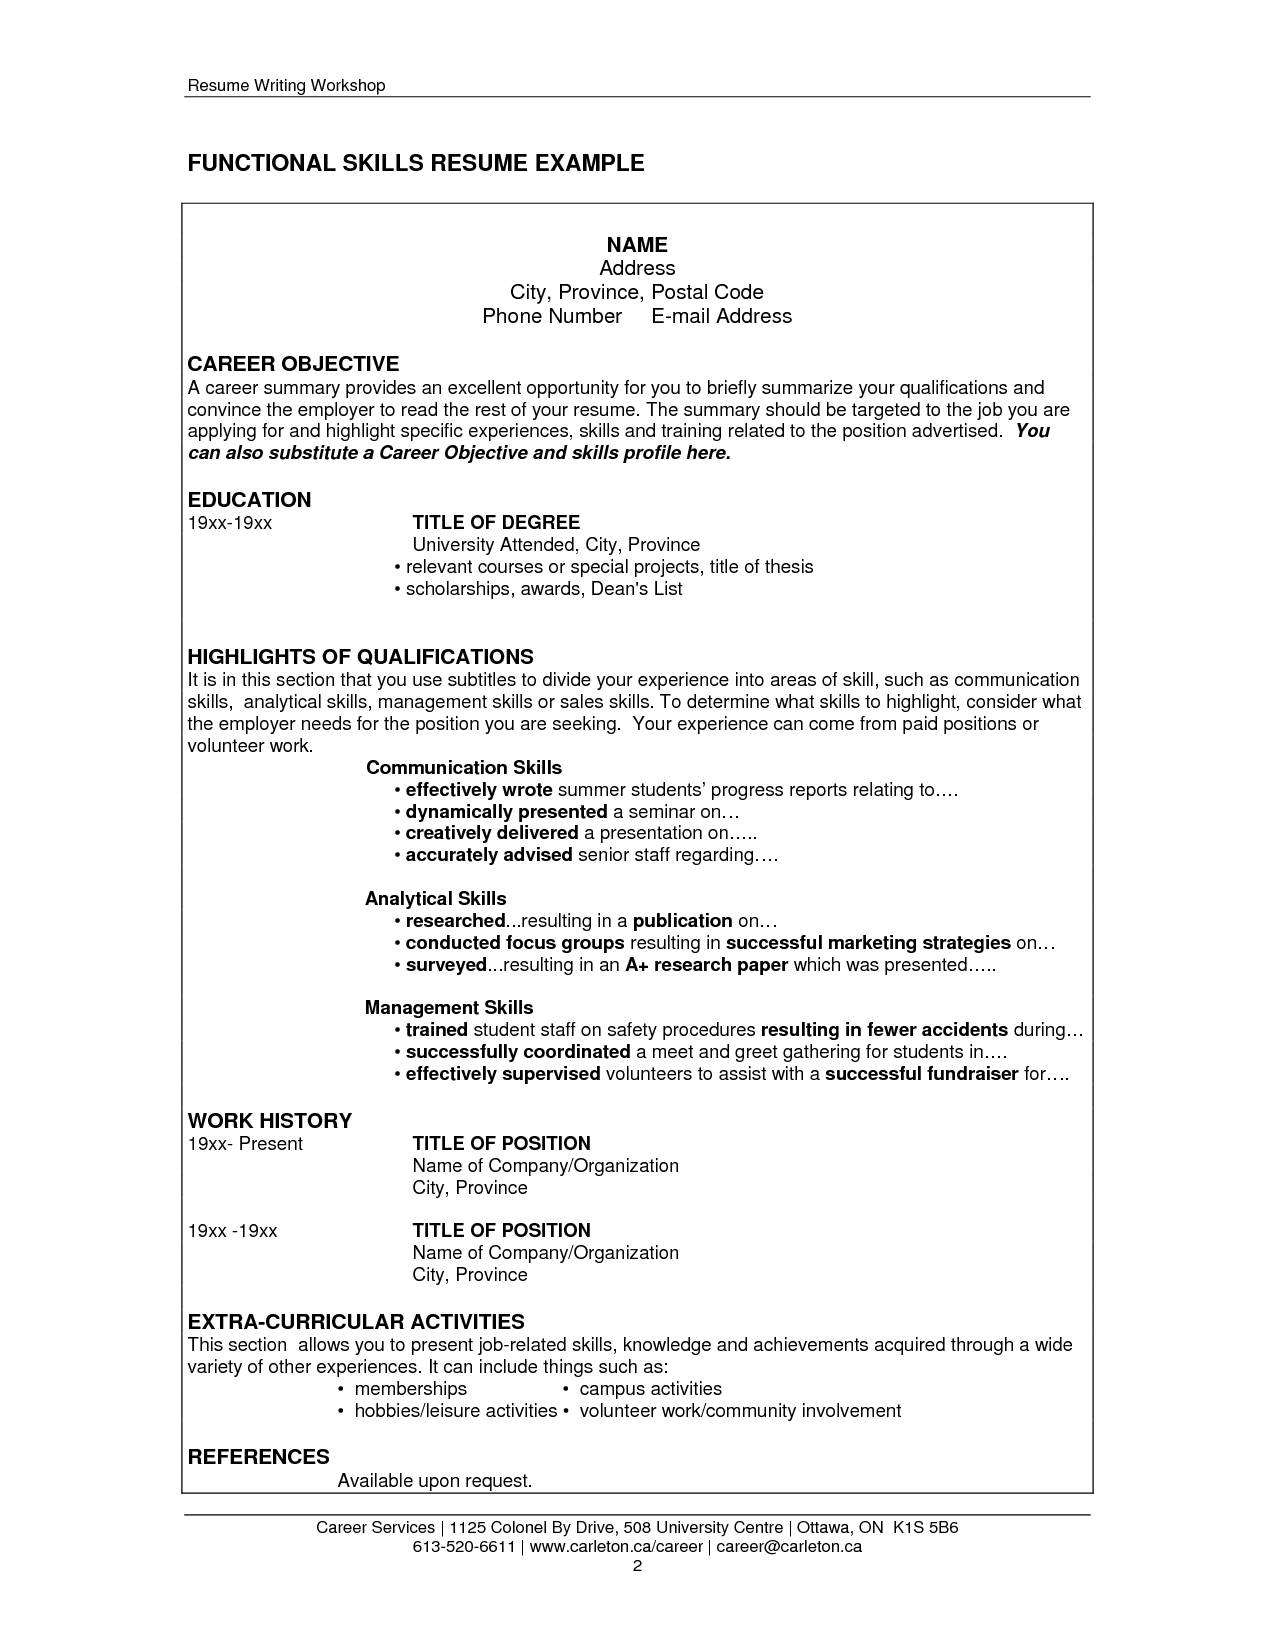 Job Resume munication Skills umecareer